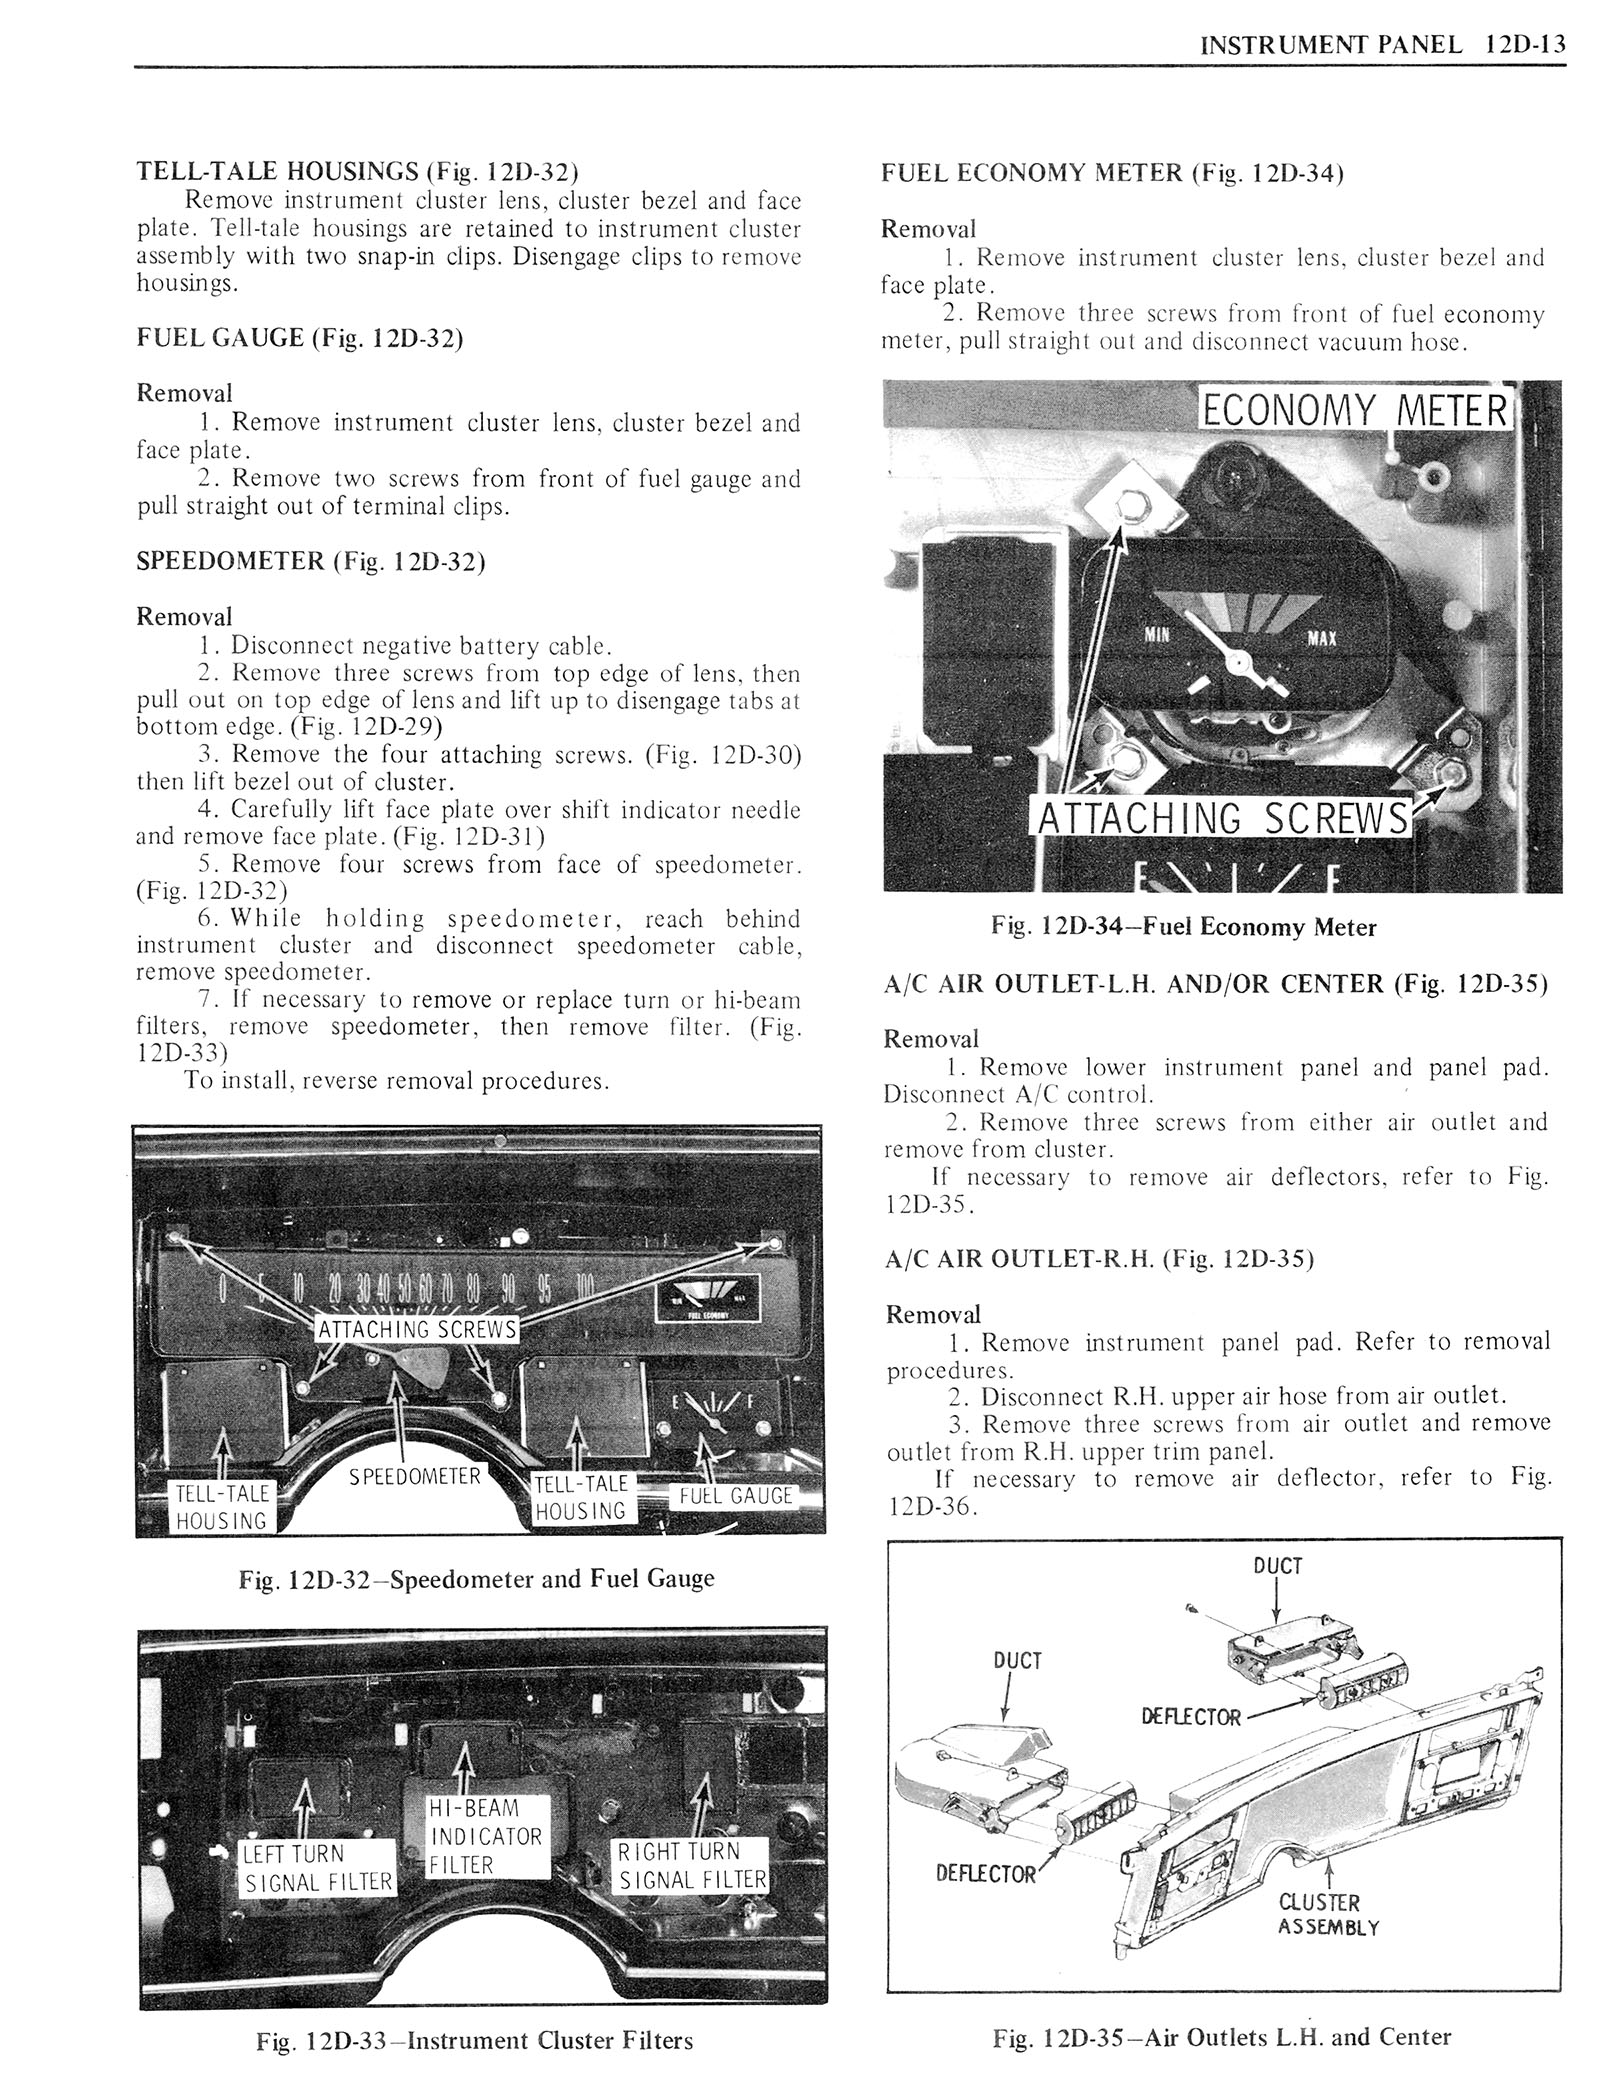 1976 Oldsmobile Service Manual page 1277 of 1390